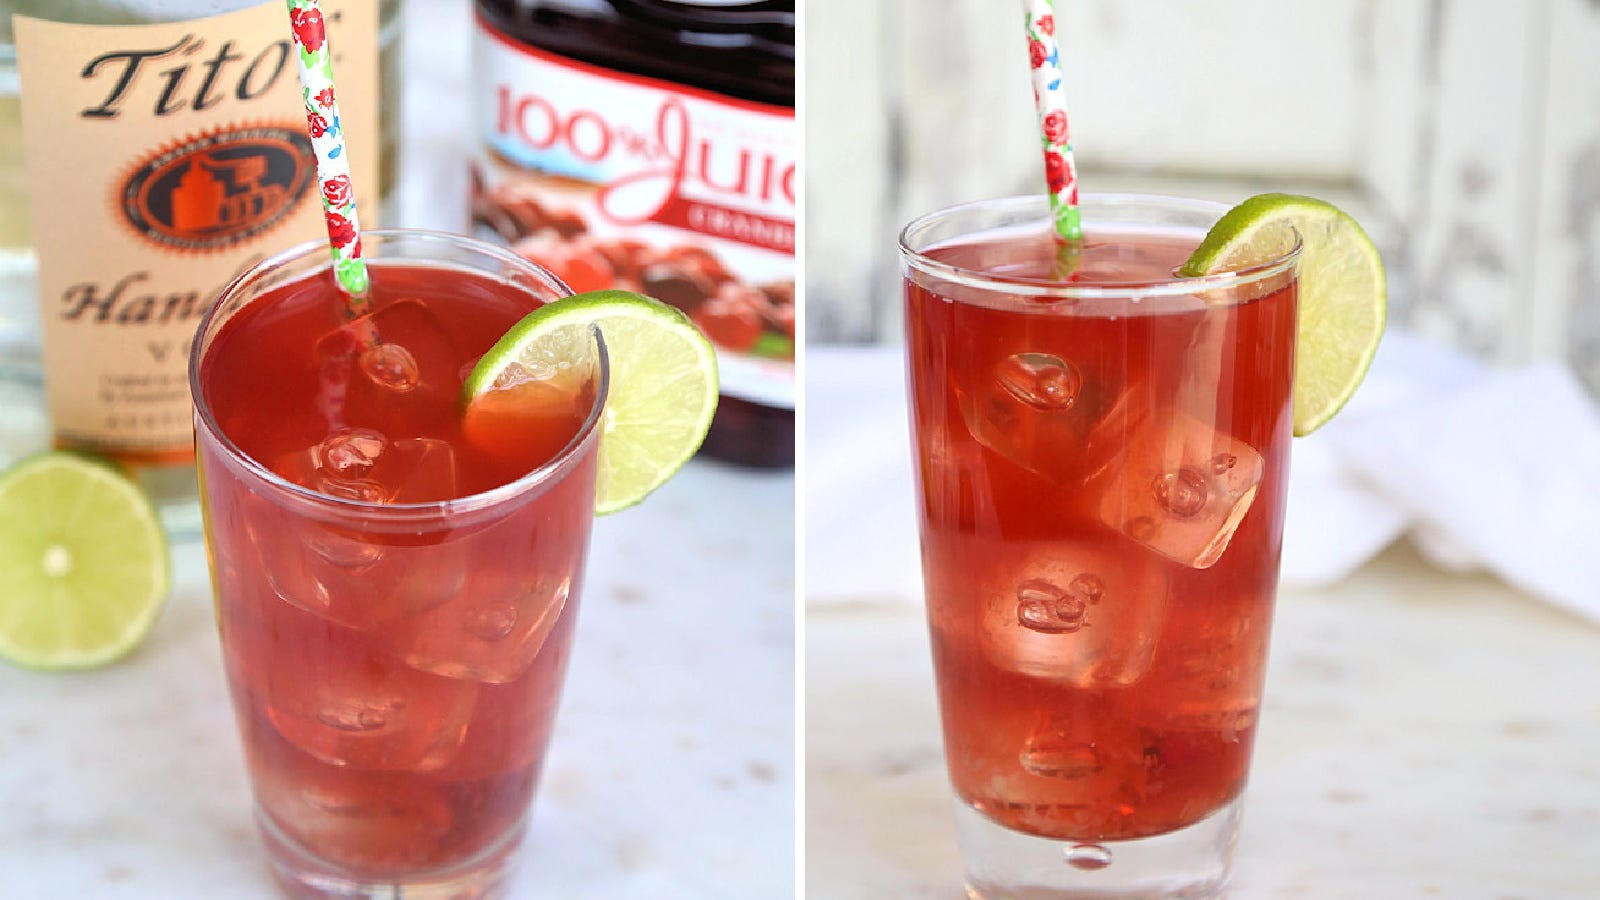 Two images displaying a cape codder cocktail, with ingredients like vodka, cranberry juice and lime in the background.